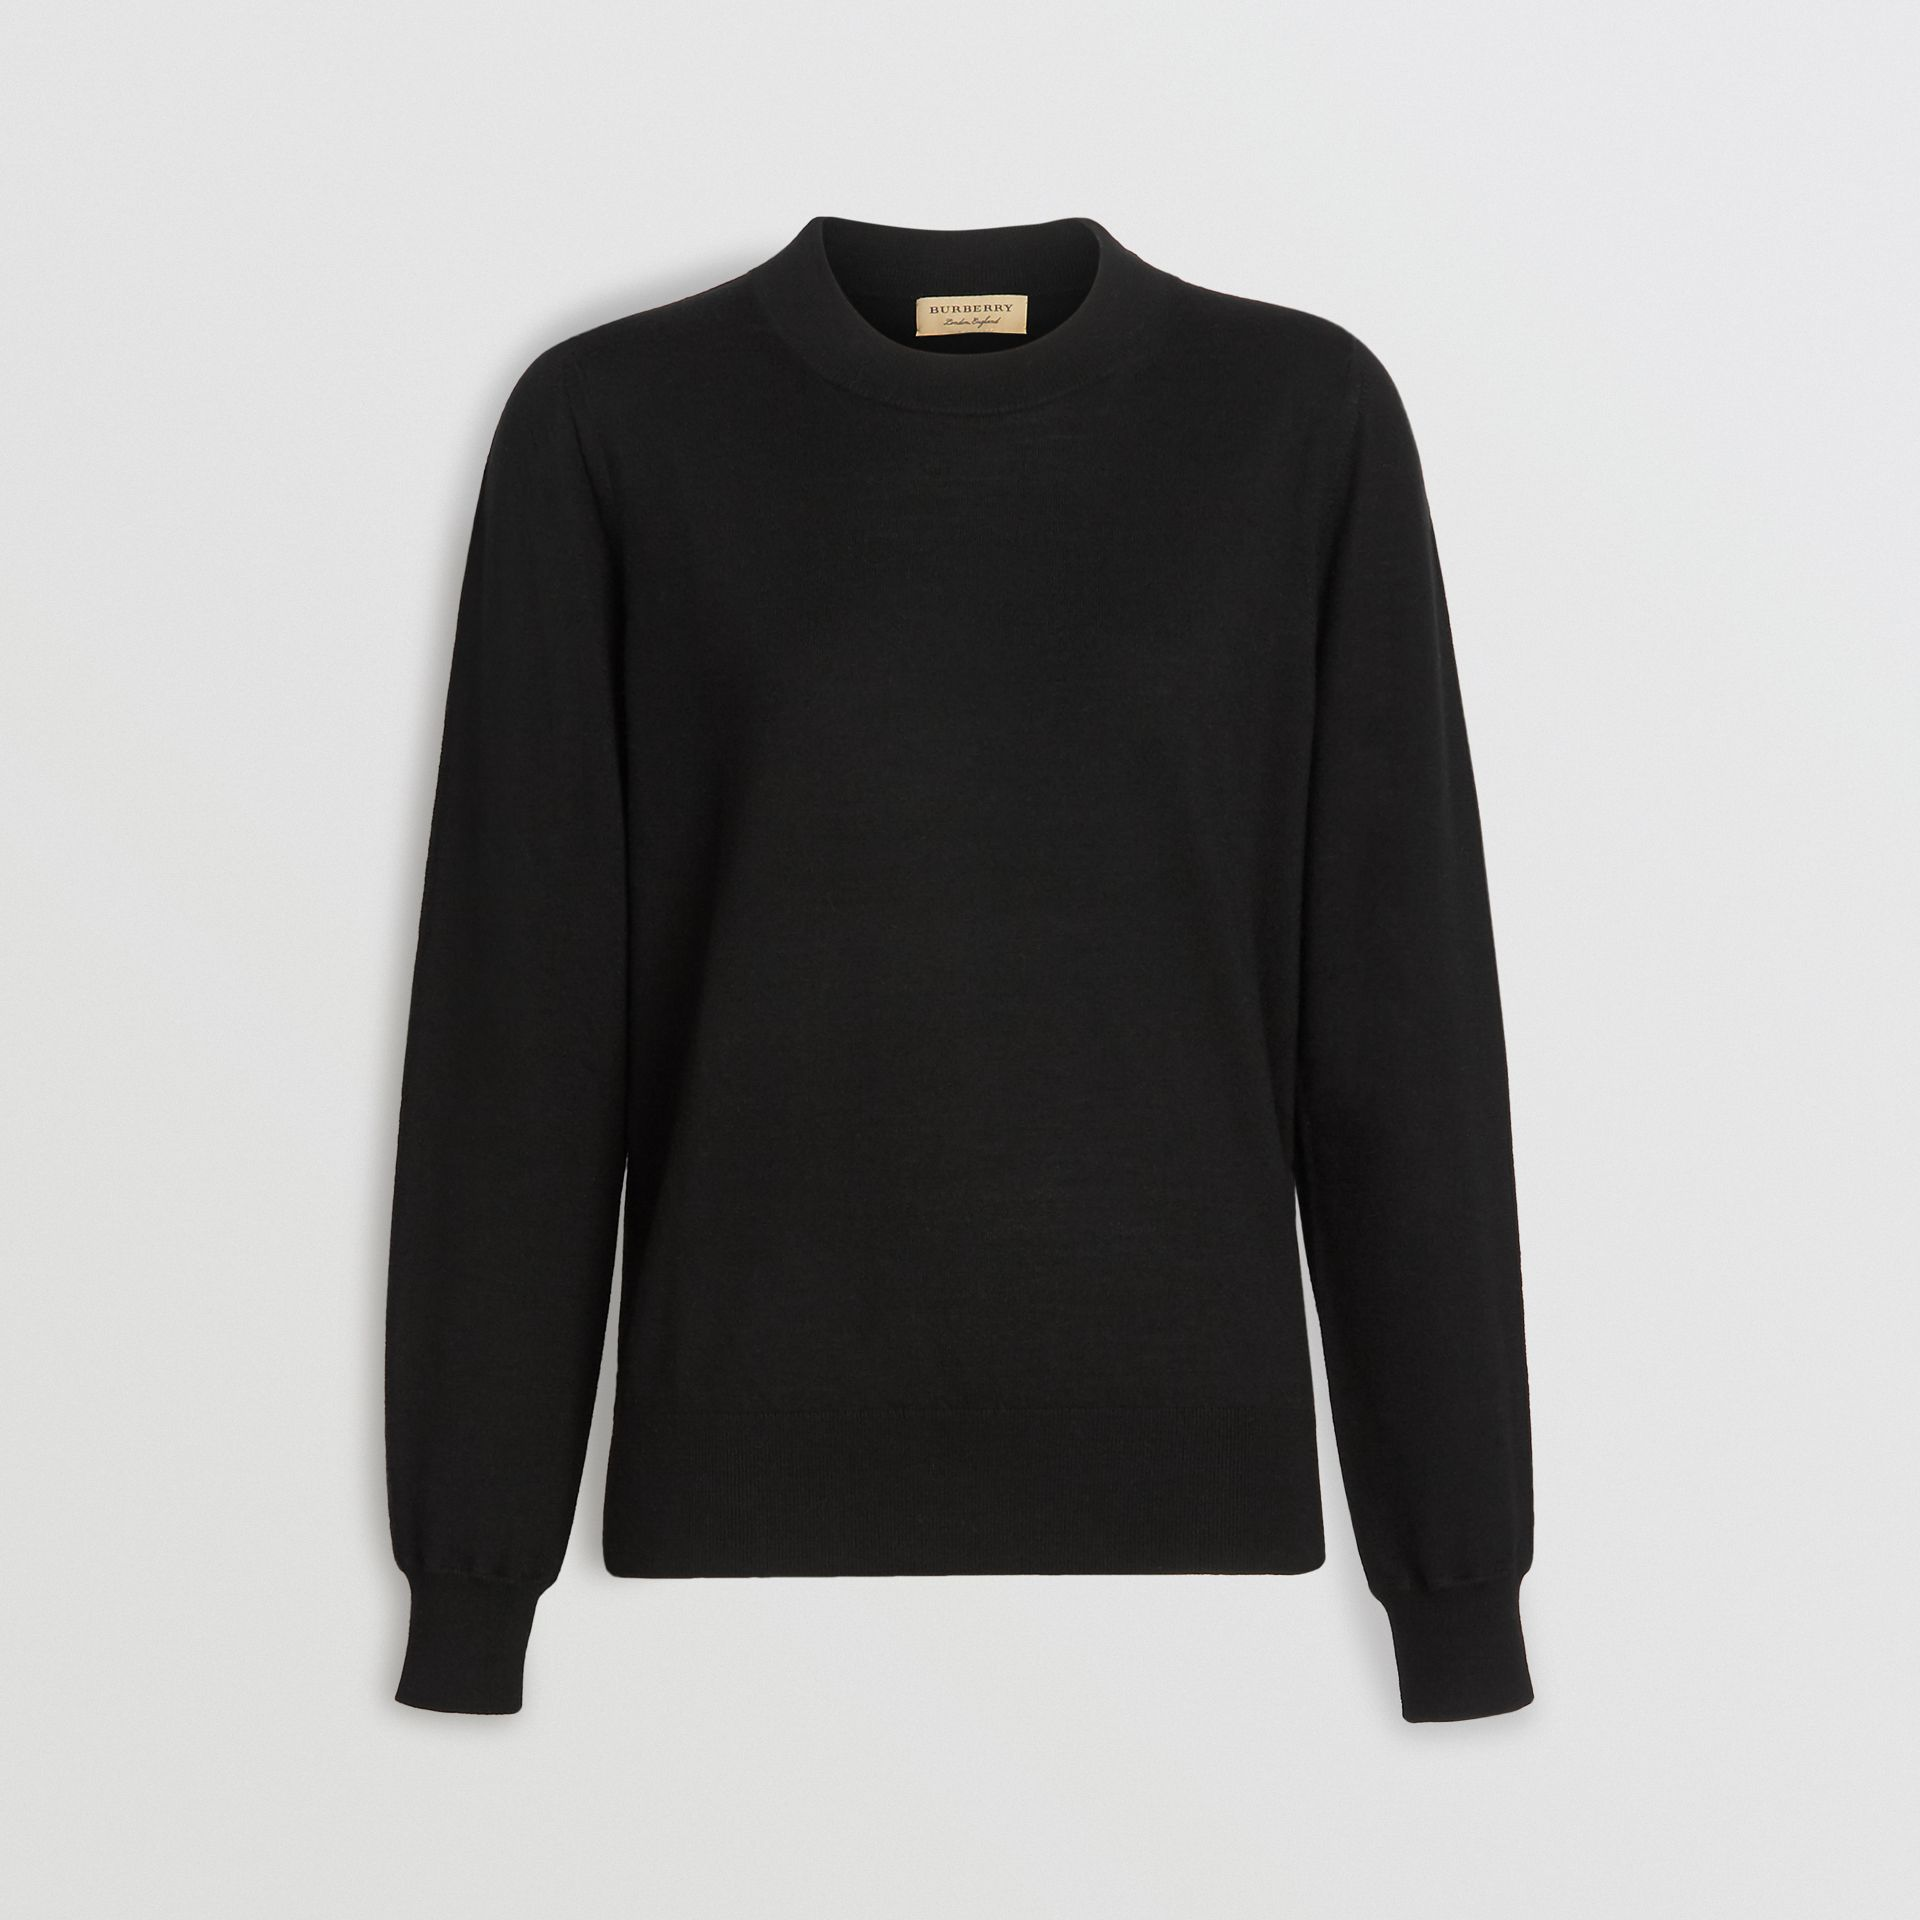 Merino Wool Crew Neck Sweater in Black - Women | Burberry - gallery image 3